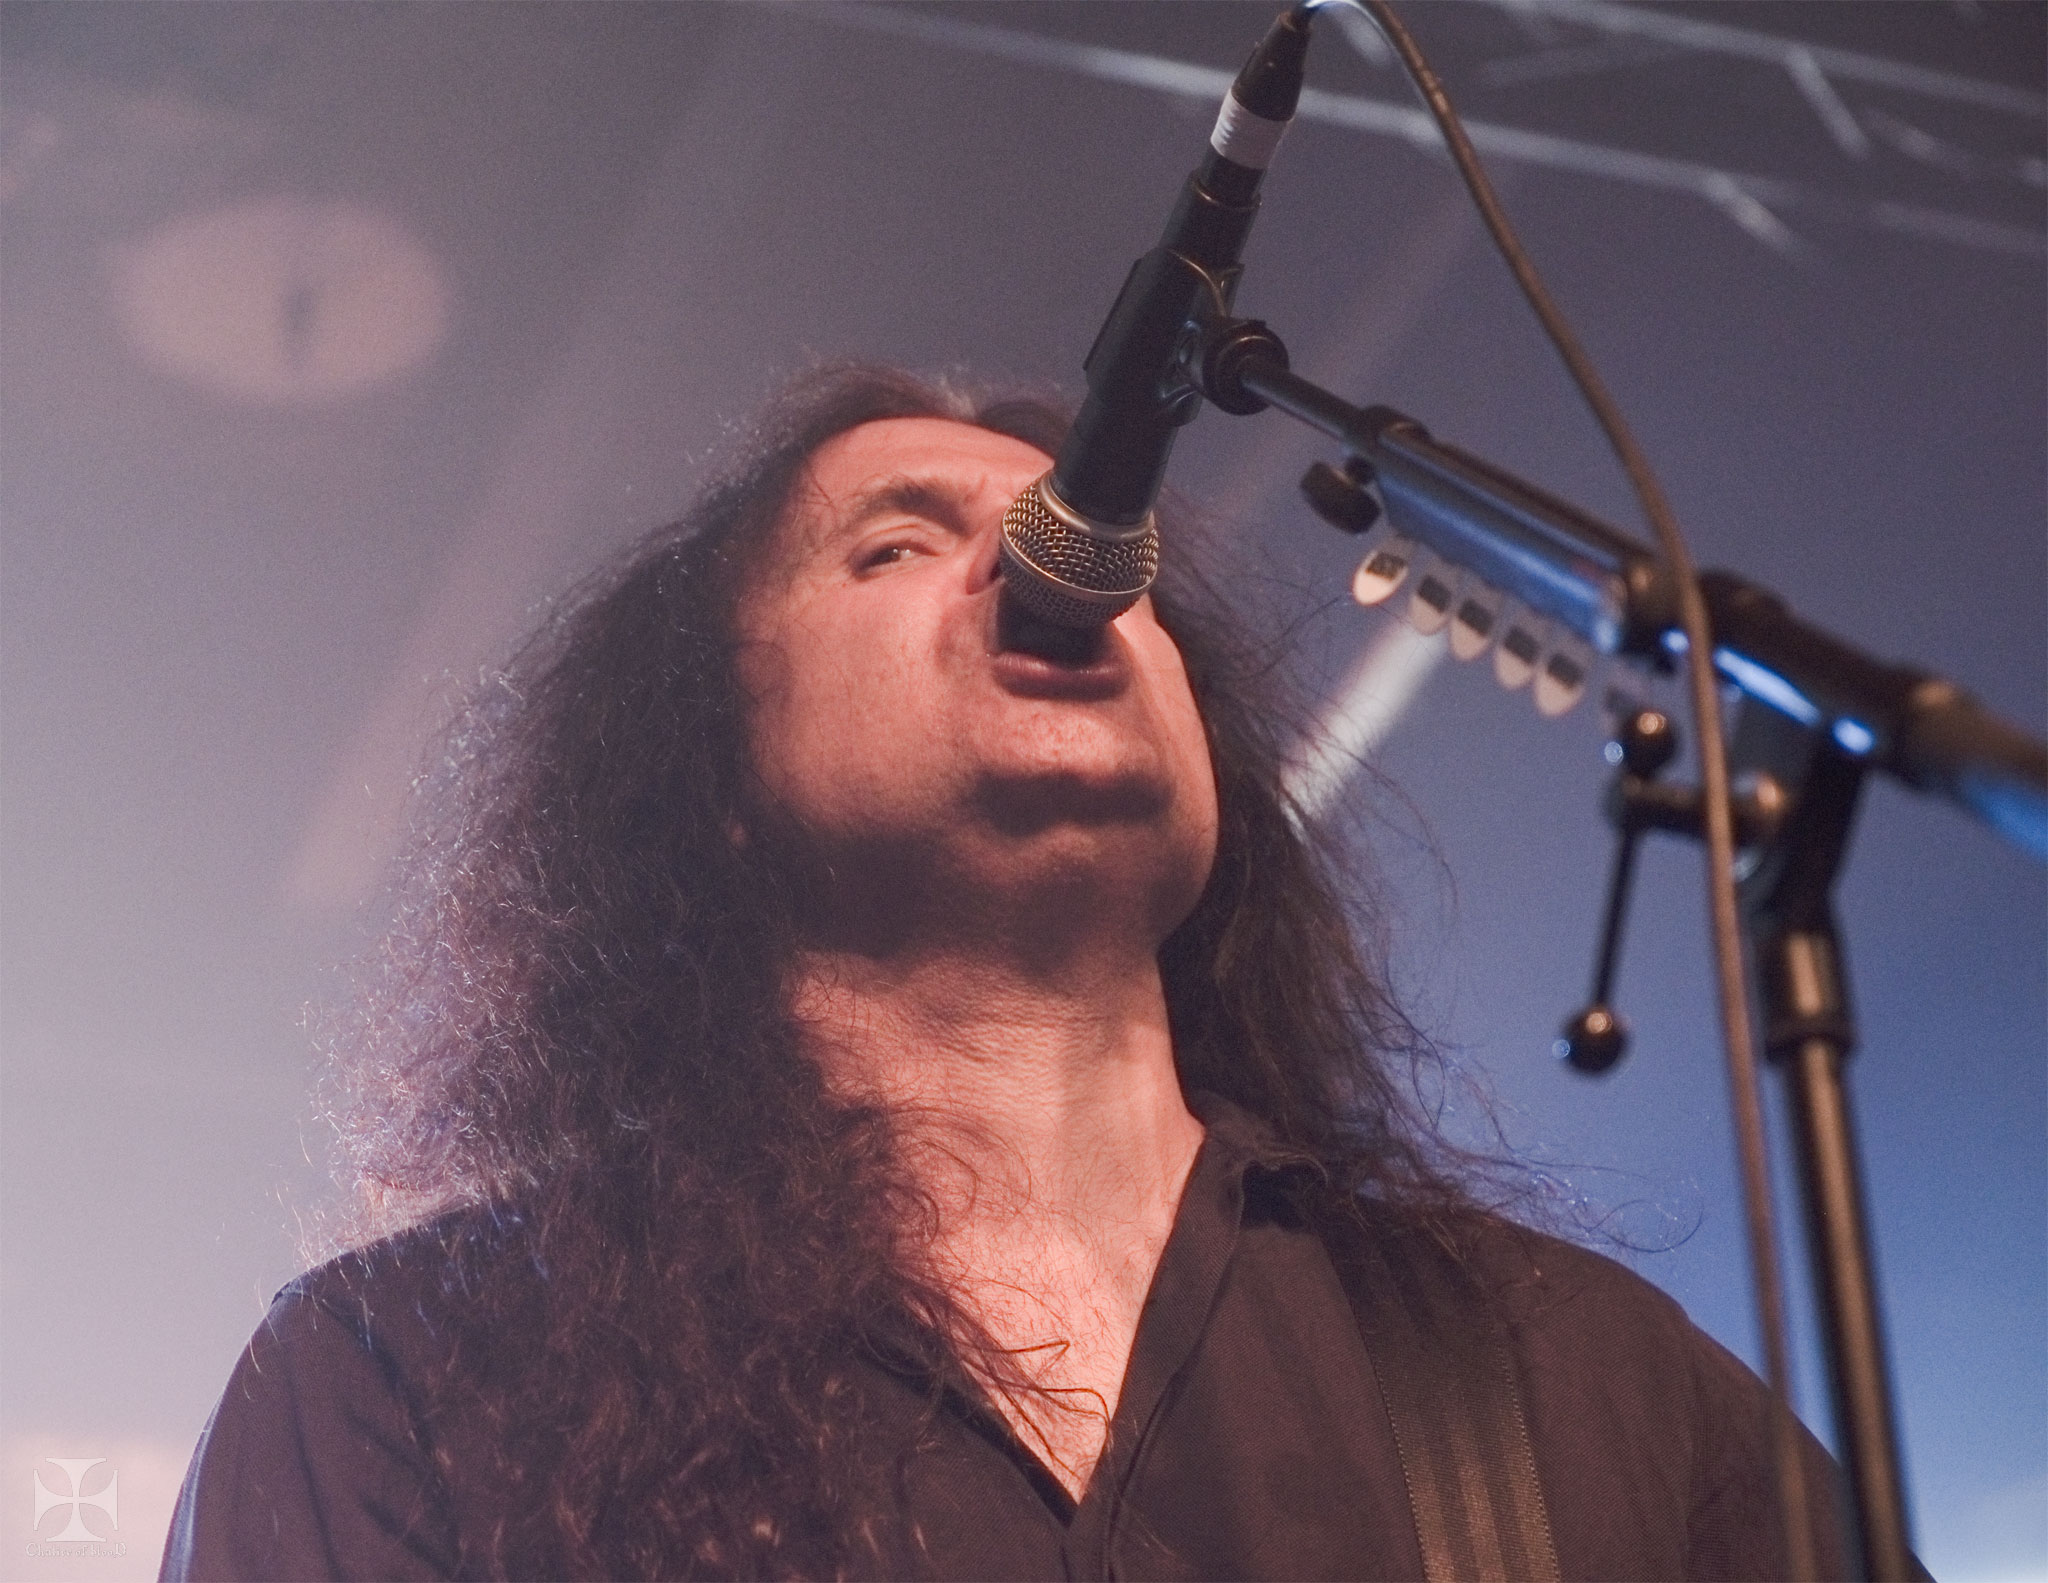 Kreator-0042-Exposure-watermarked.jpg